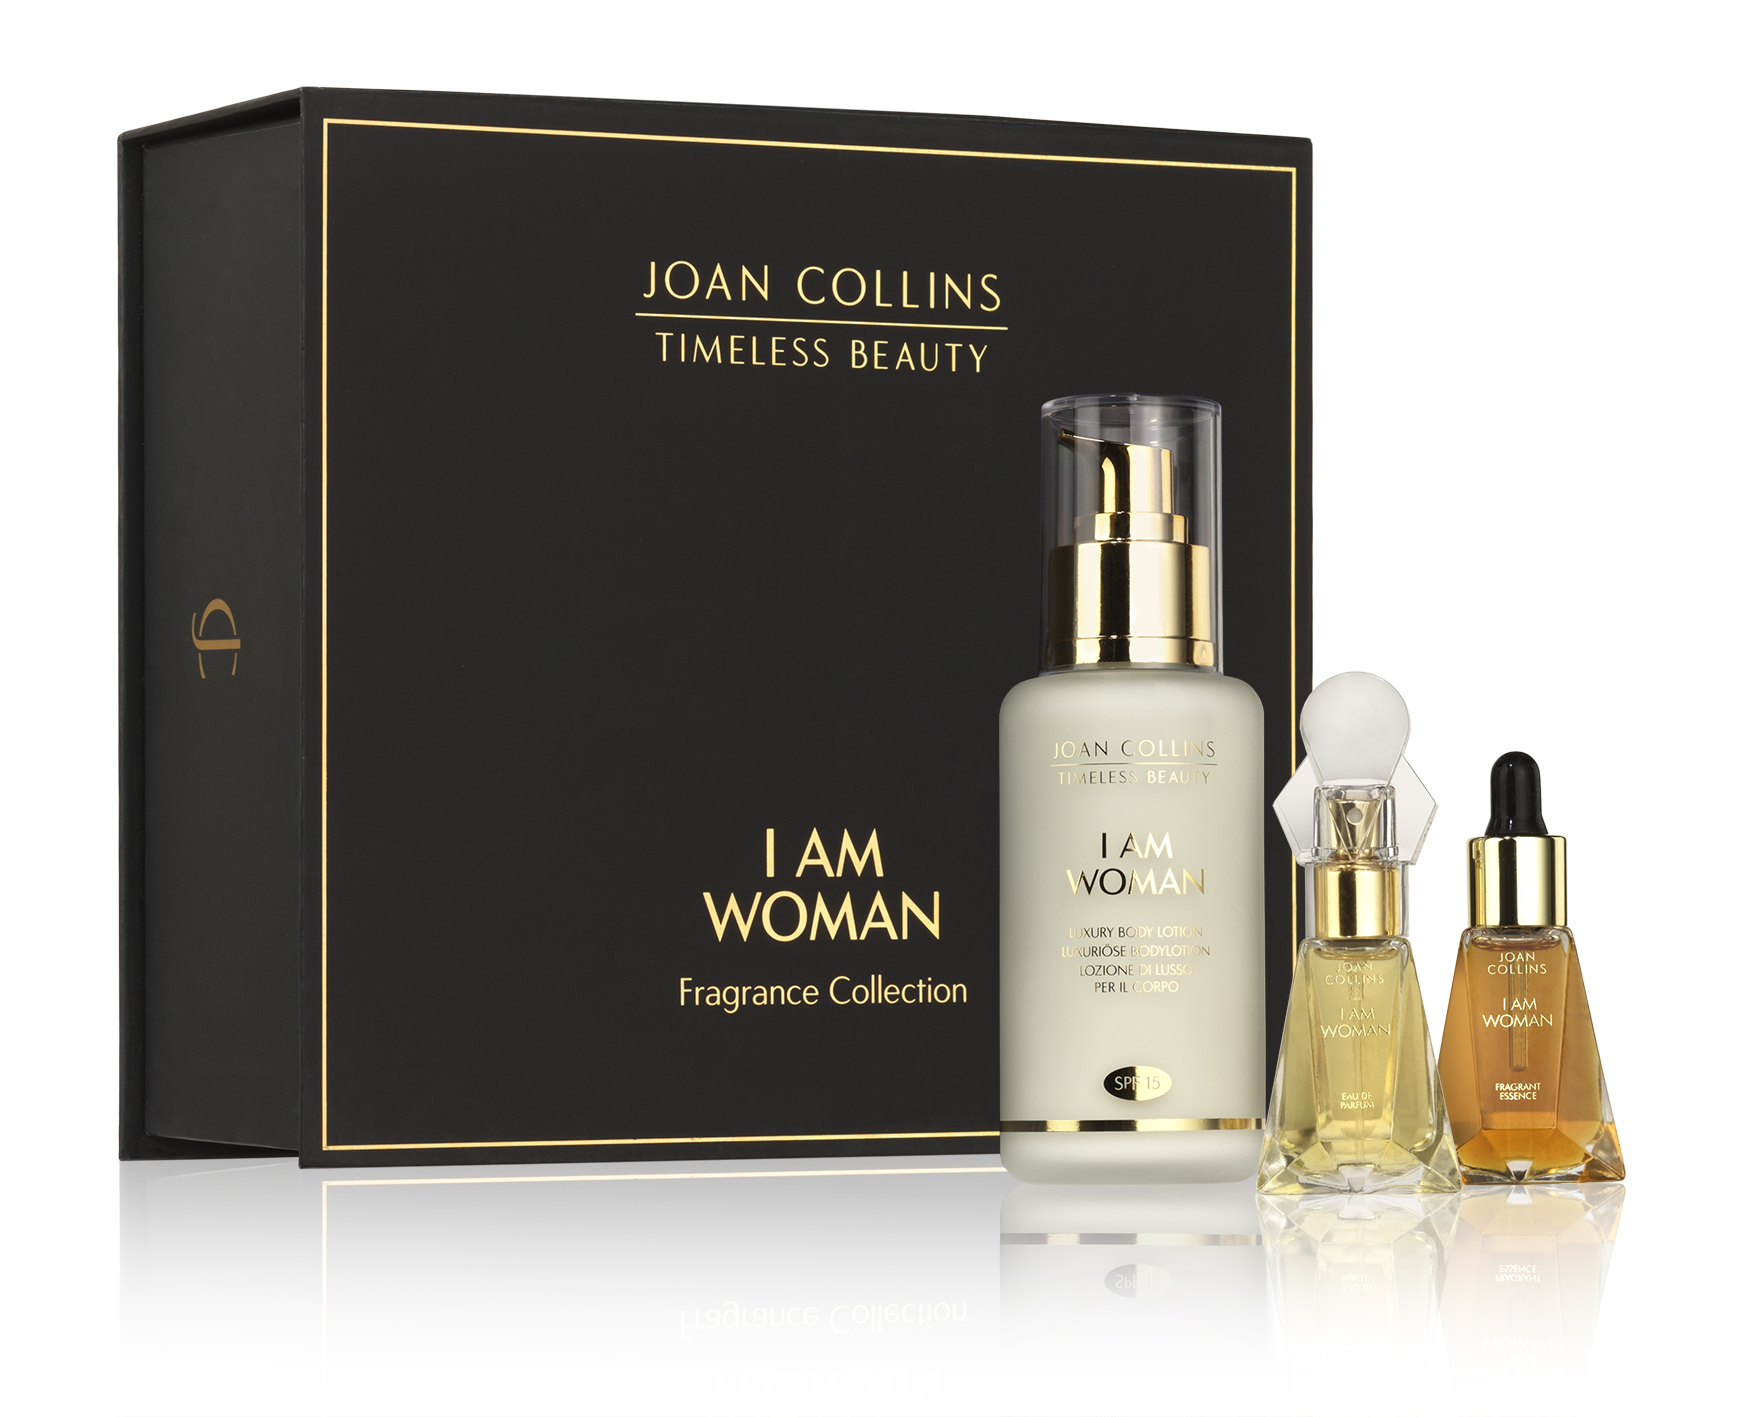 Joan Collins I AM WOMAN, Fragrance Gift Set, £45